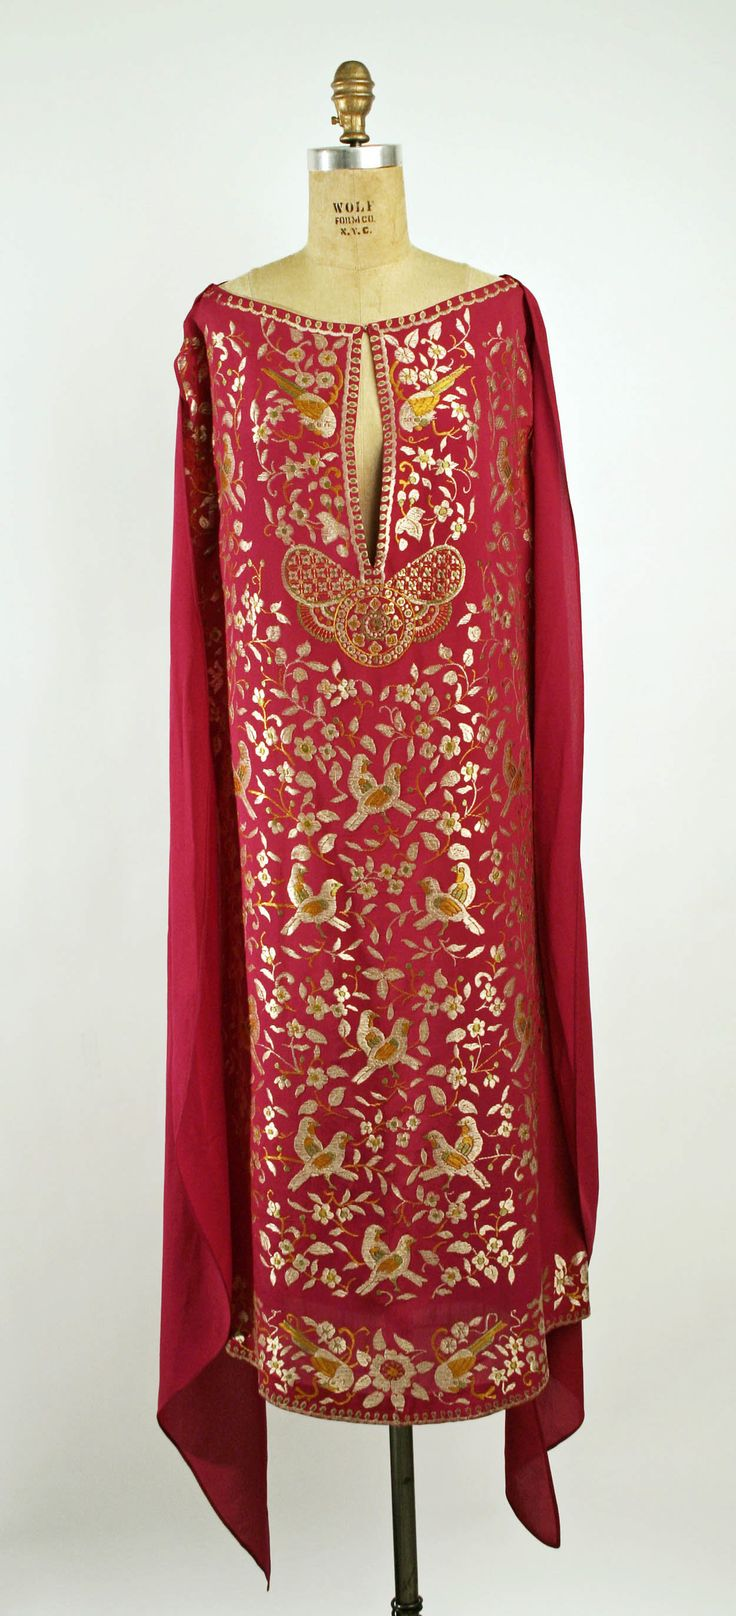 Dresses by Callot Soeurs feature long fluid versions of the vestigial sleeves seen on Ottoman coats. The Callots are more widely known for their Chinoiserie, but their Persian-Turkish styles often share the same sense of Chinese color